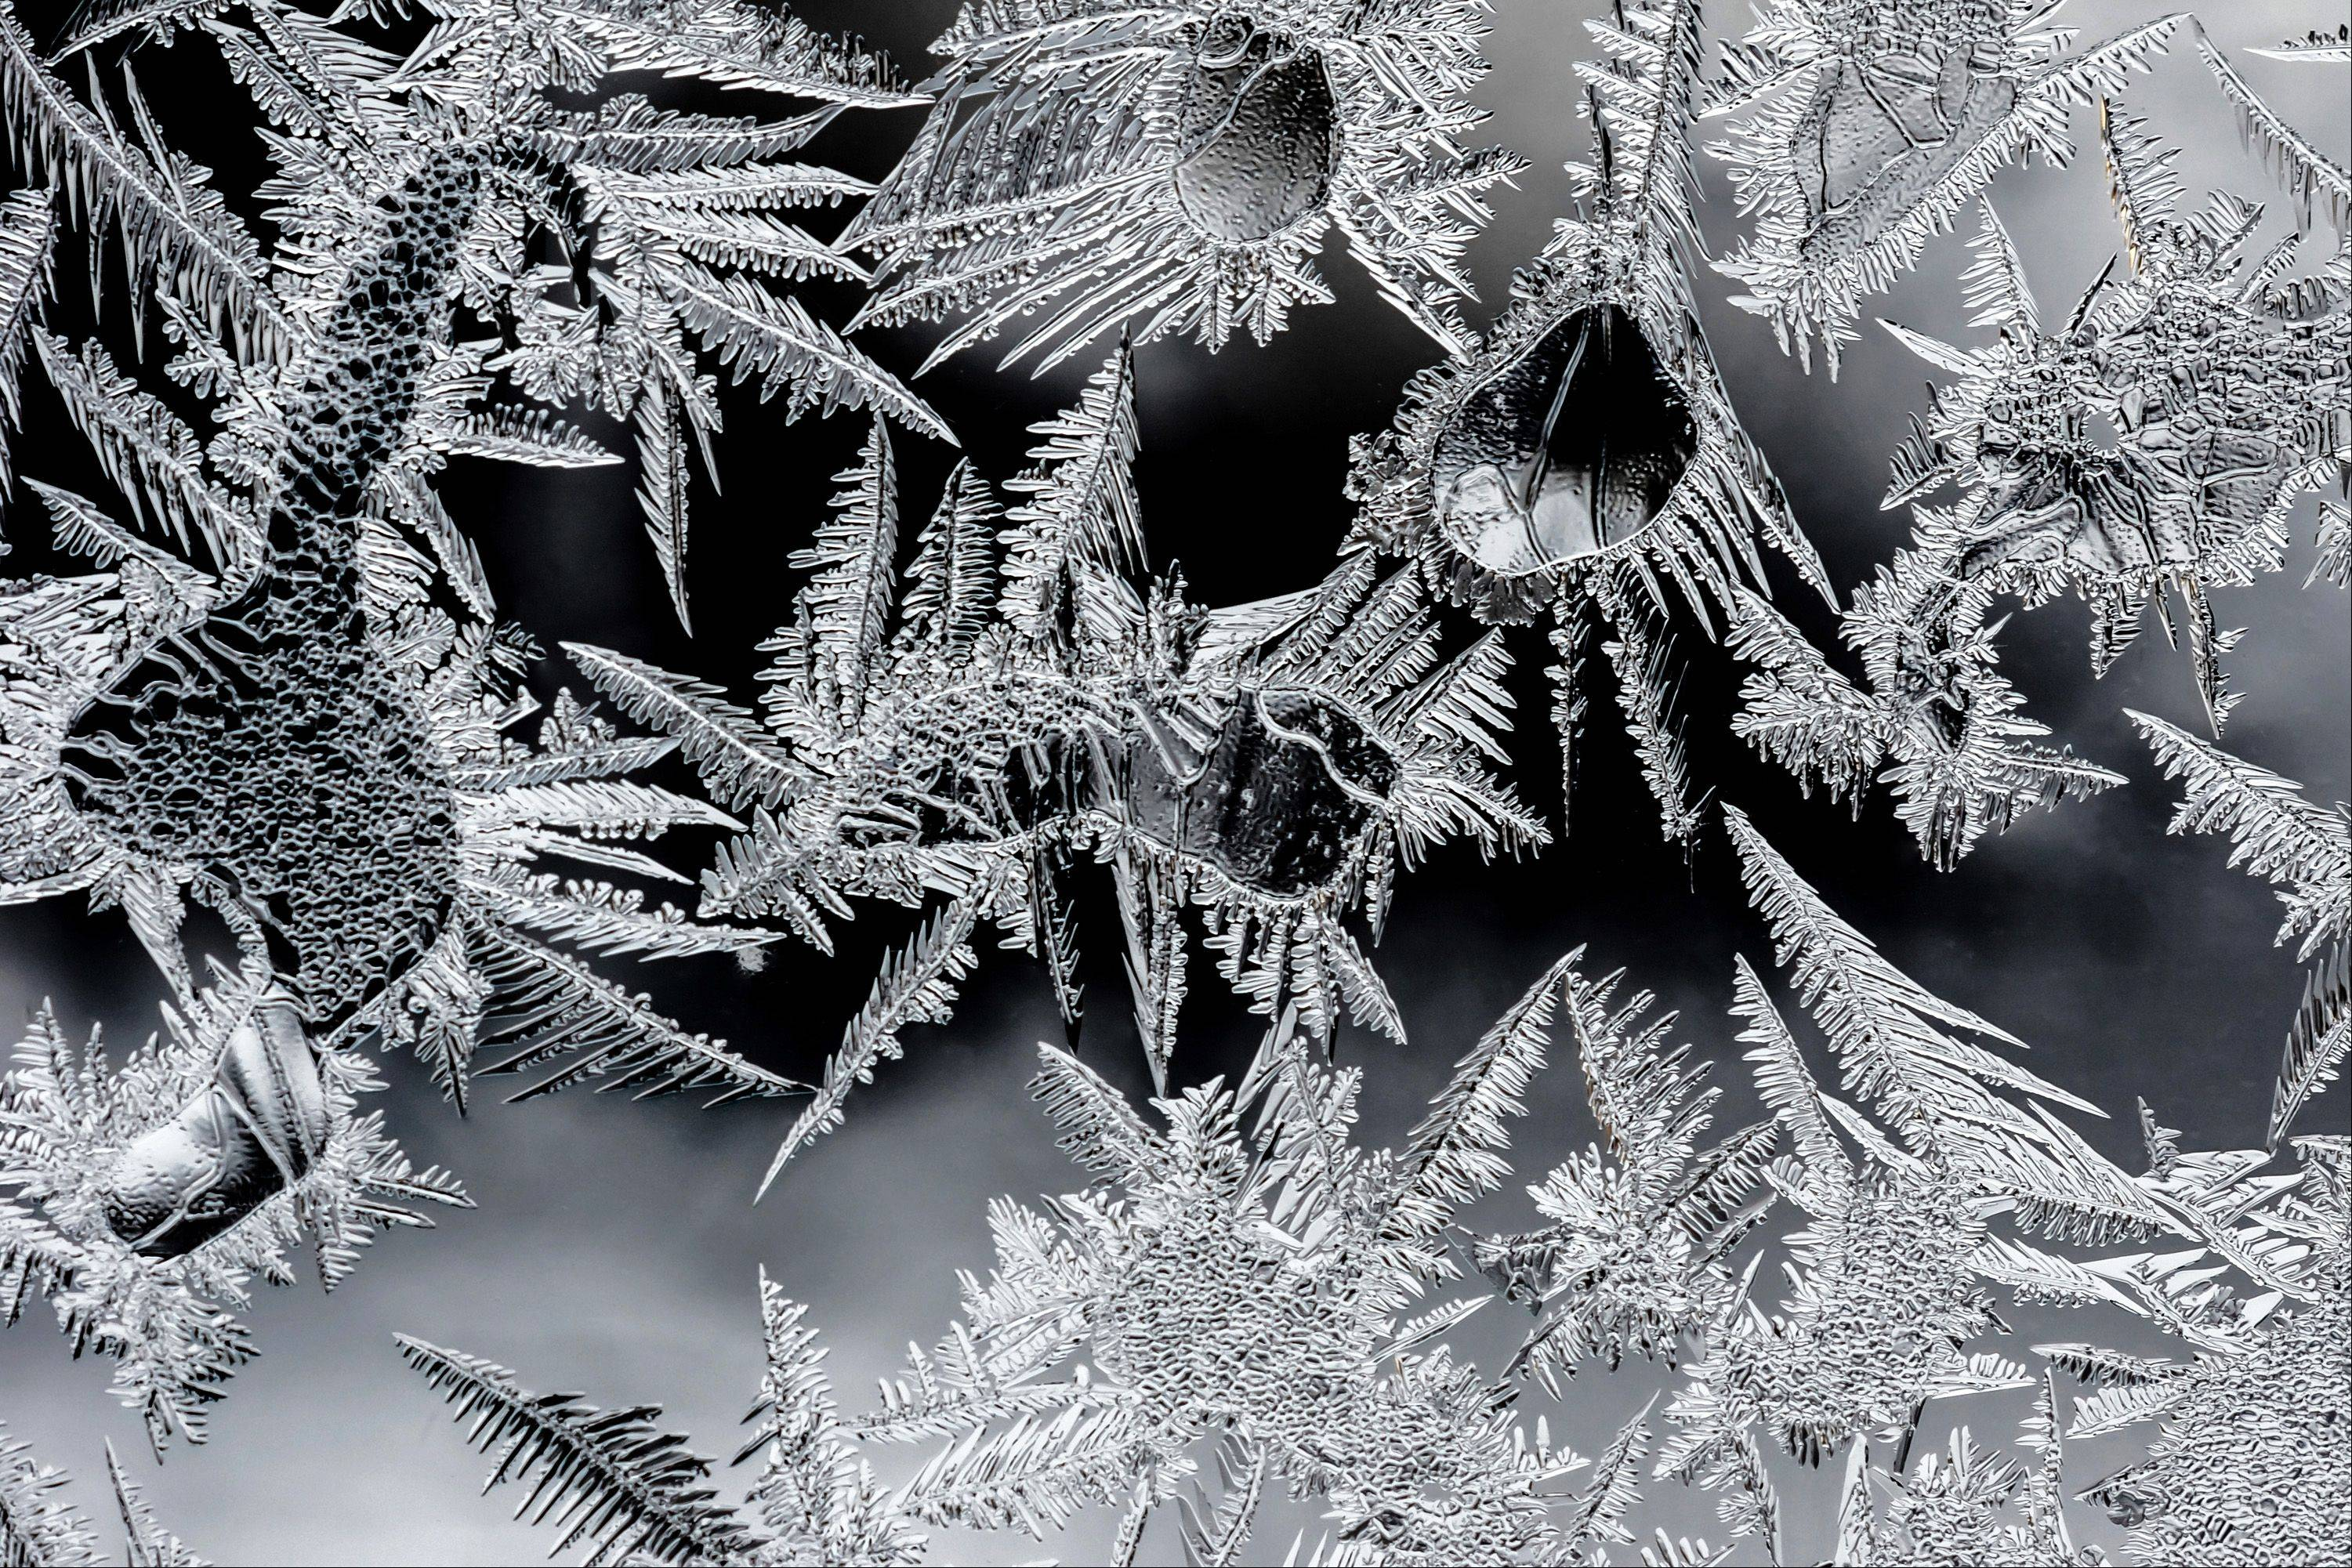 "This is the first year I�ve realty noticed these beautiful ice crystals on the insides of my garage windows. The patterns are quite intricate, and like people sometimes see objects in the clouds, I�ve ""seen all kinds of things in the arrangement of these."